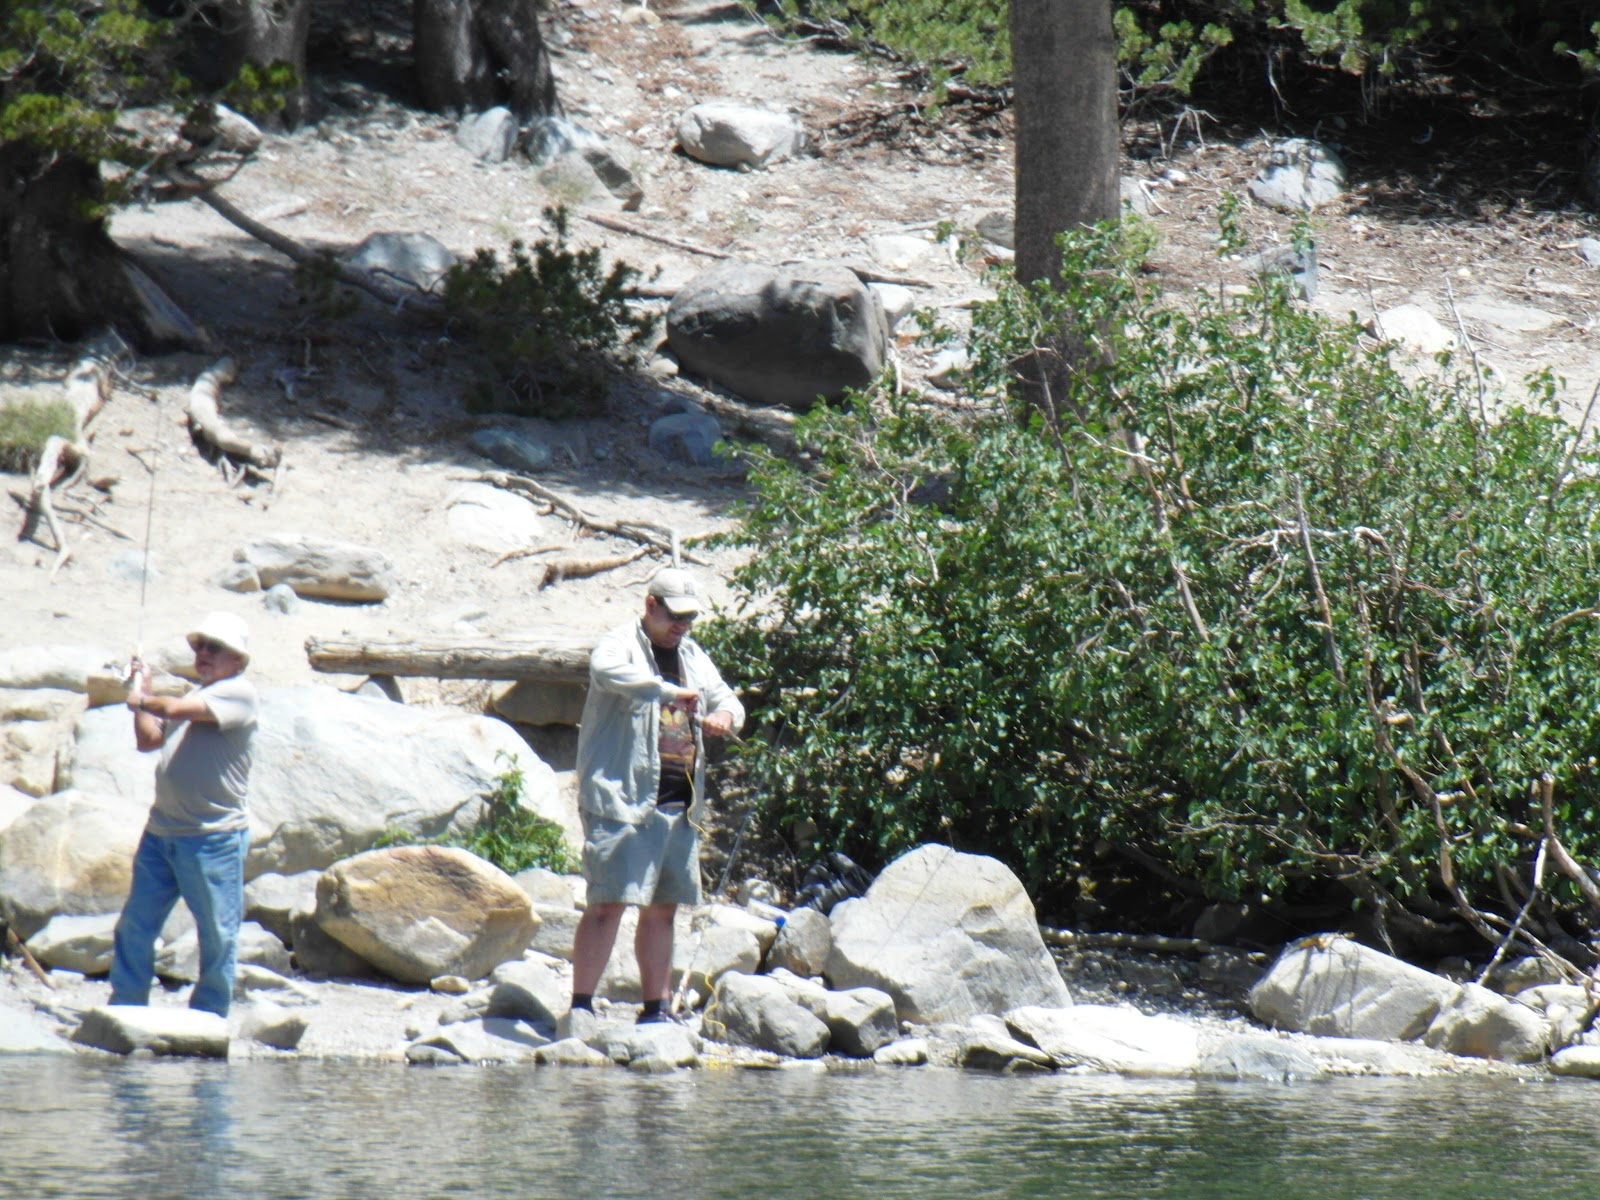 La buena vida fishing the eastern sierra nevada 2012 for Eastern sierra fishing